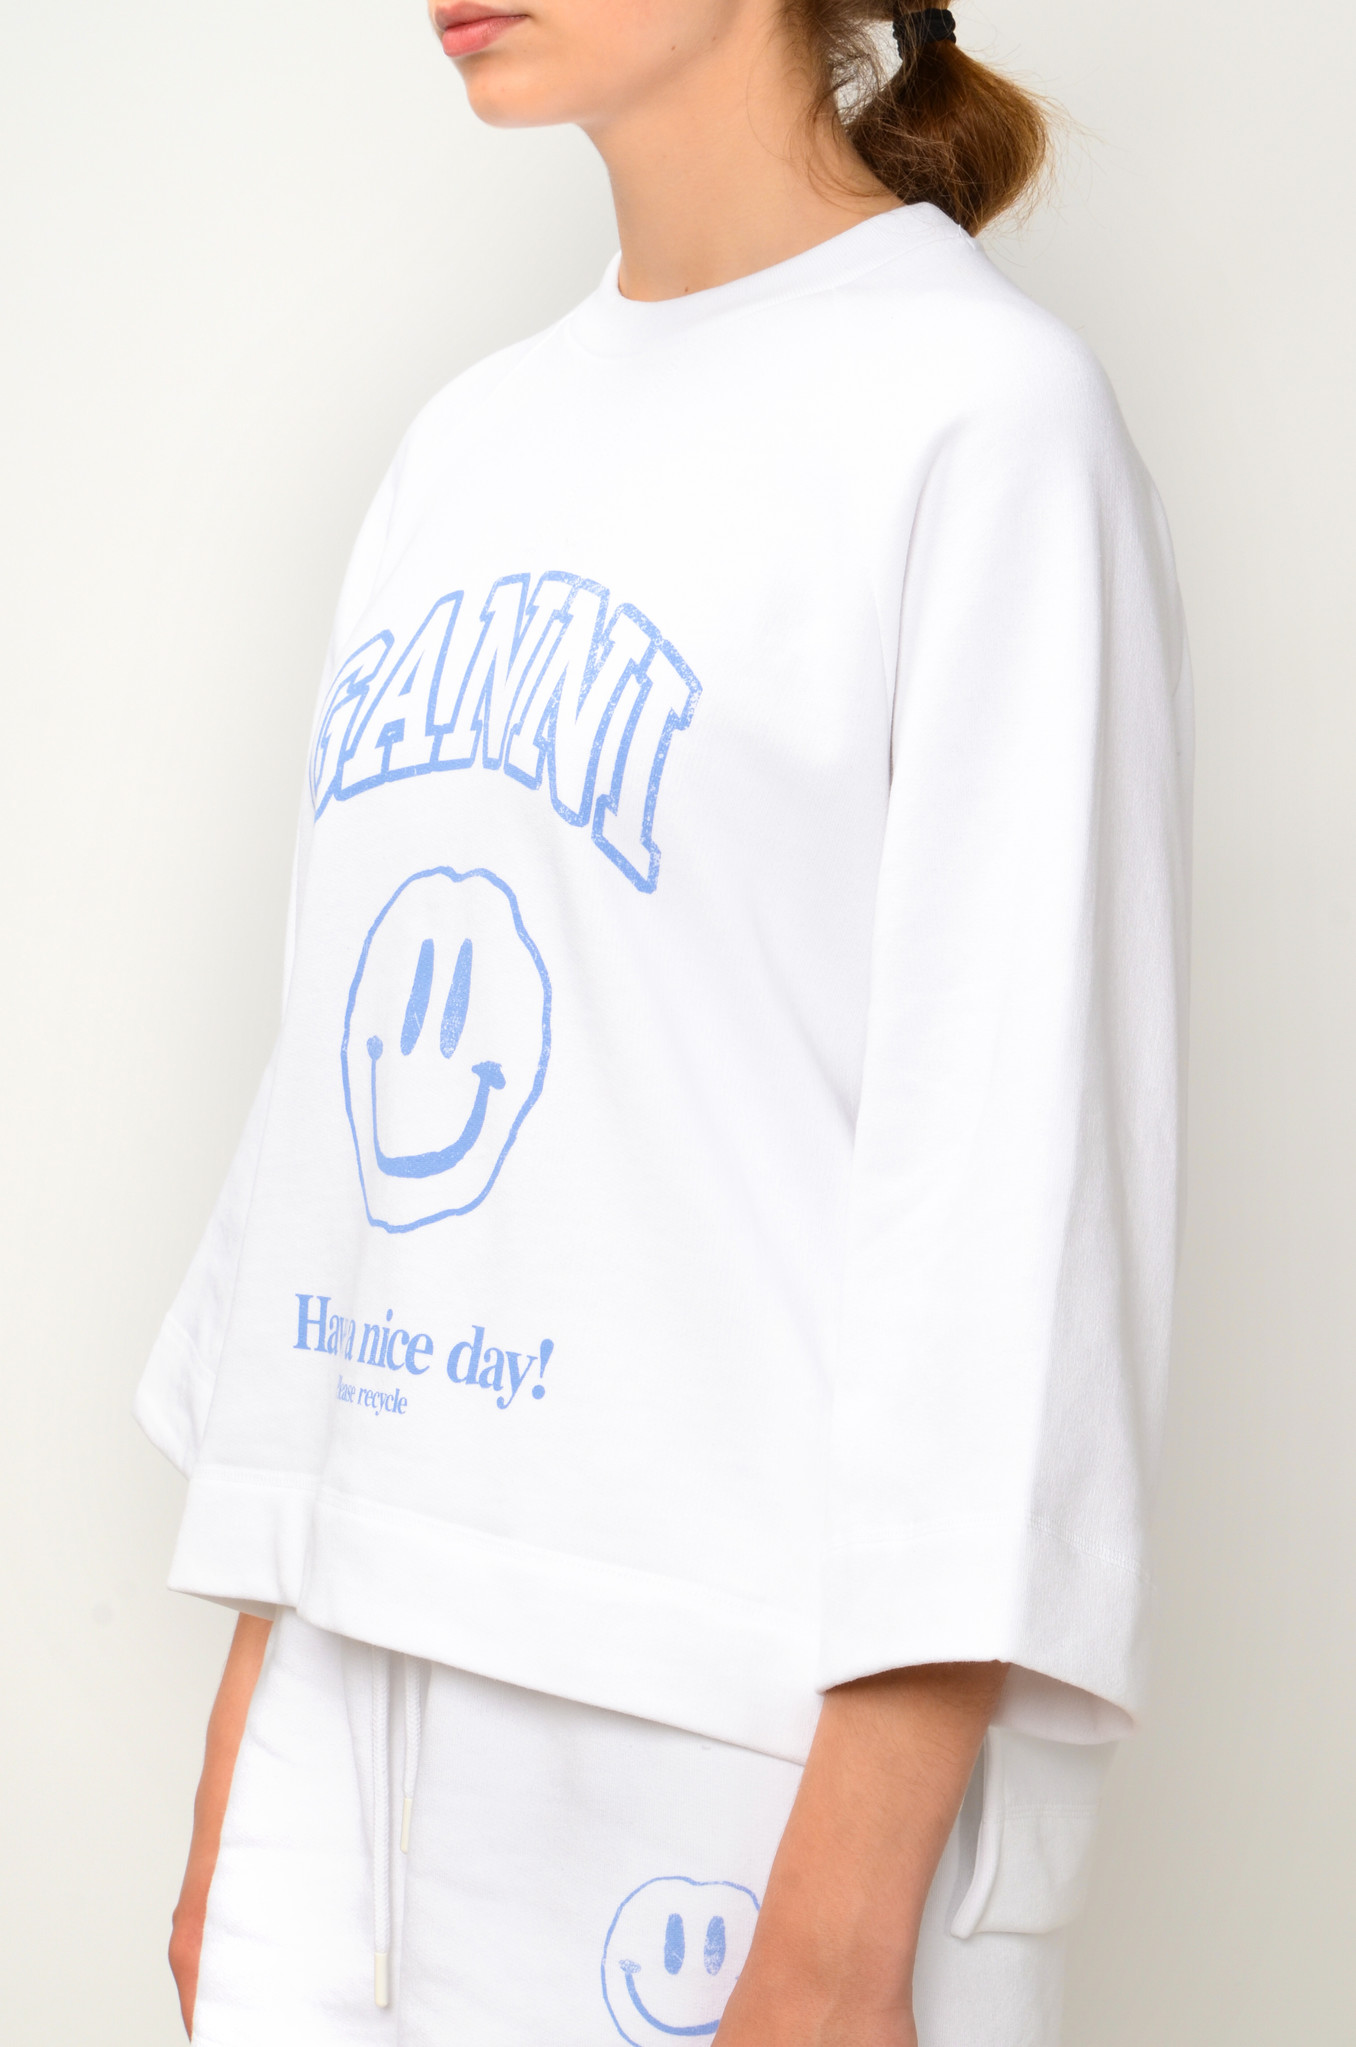 HAVE A NICE DAY SMILEY SWEATSHIRT IN HEATHER-3